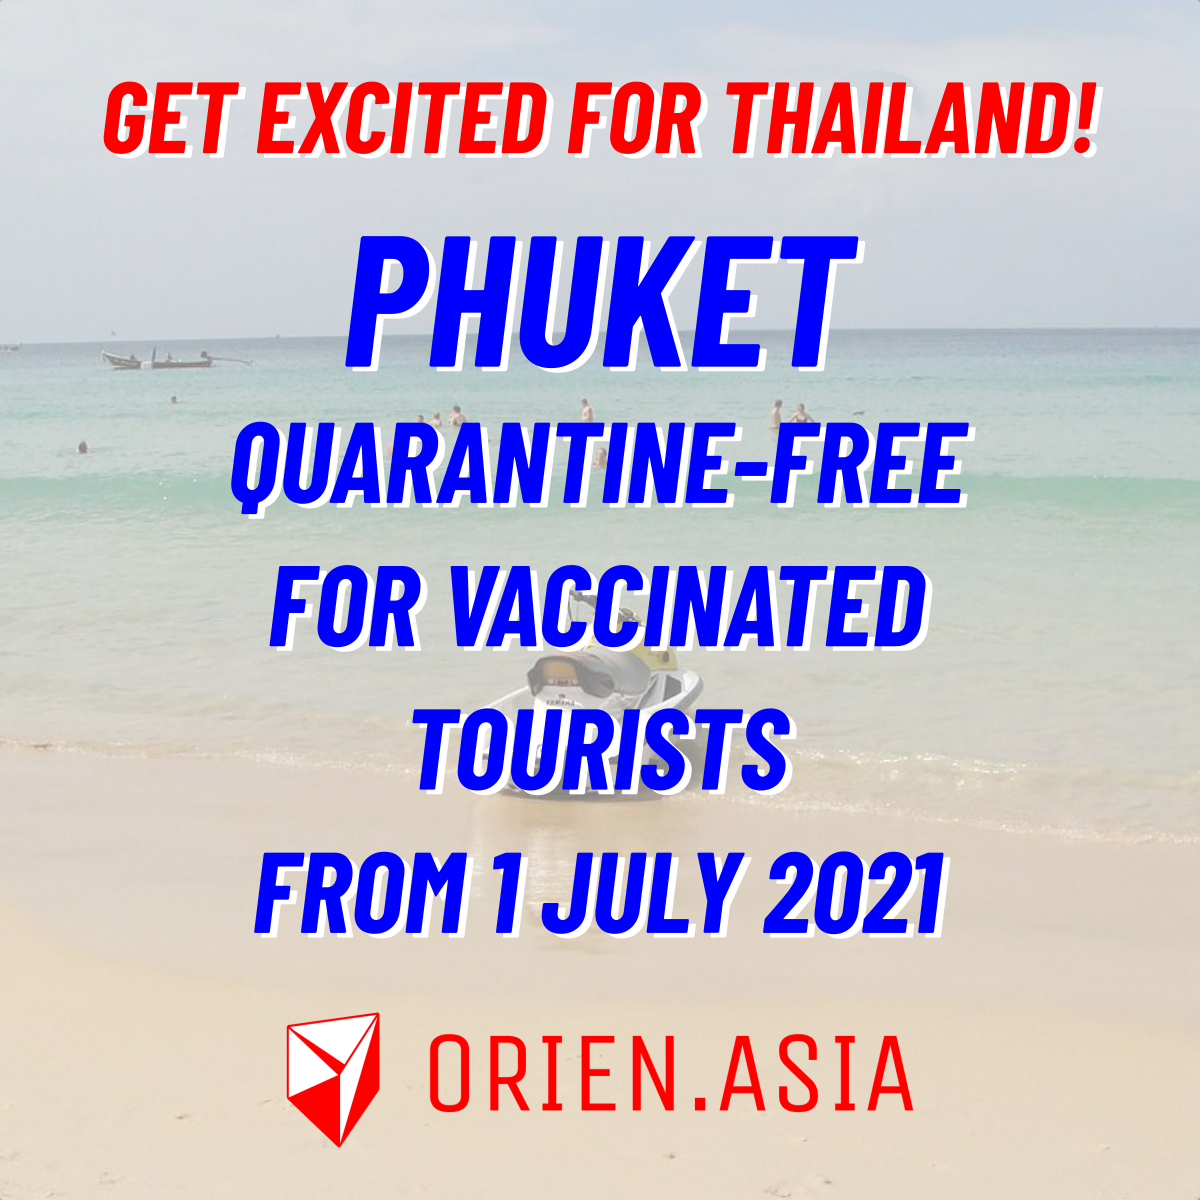 Get excited for Thailand! Phuket quarantine-free for COVID-19 vaccinated tourists from 1 July 2021